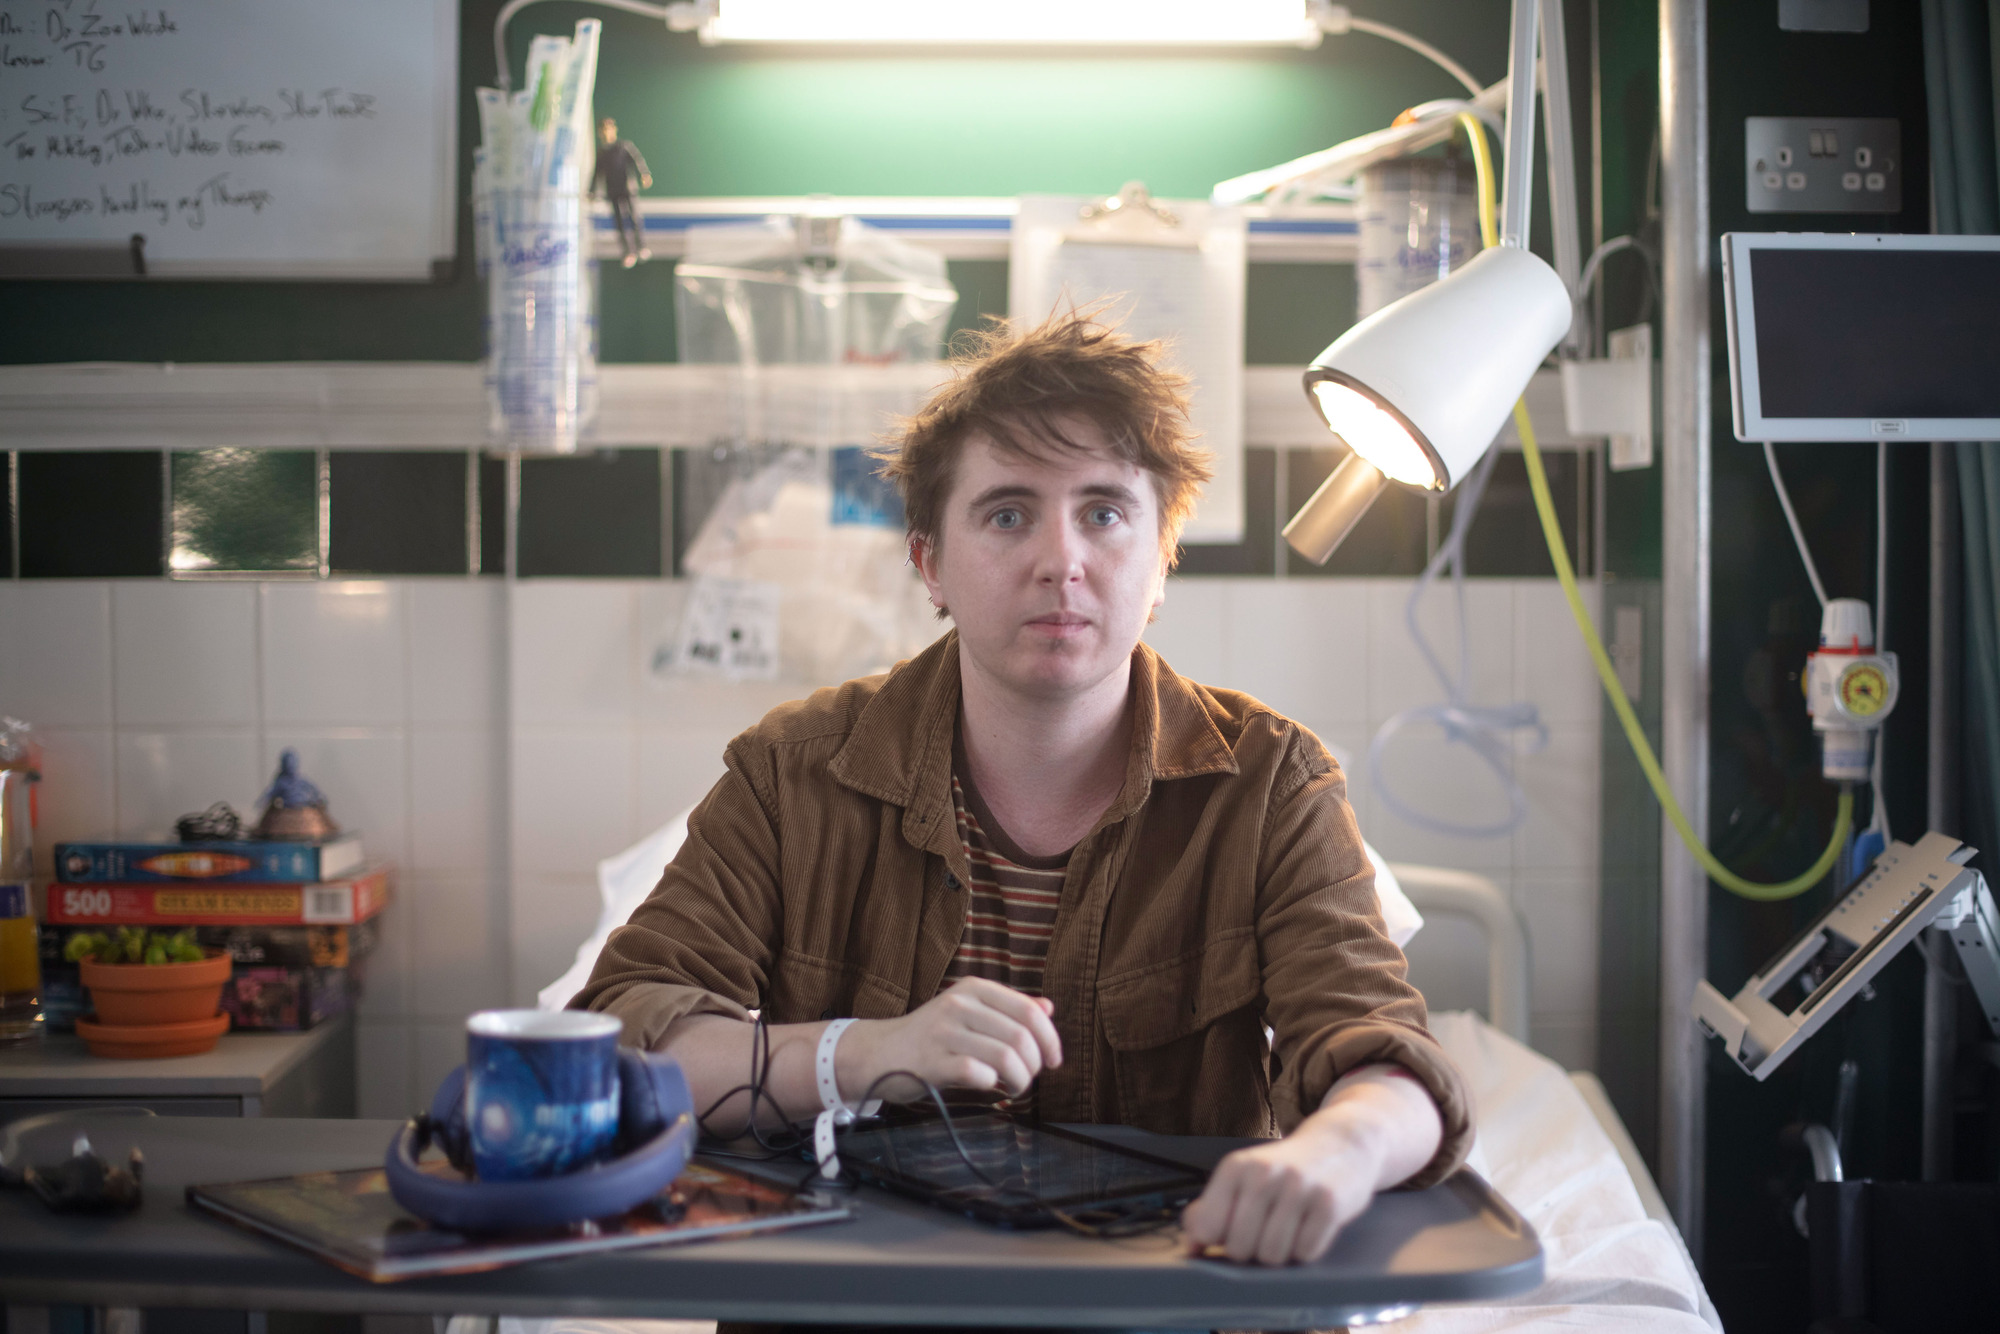 Trust Me star Elliot Cooper as Danny in his hospital ward with Doctor Who memorabilia